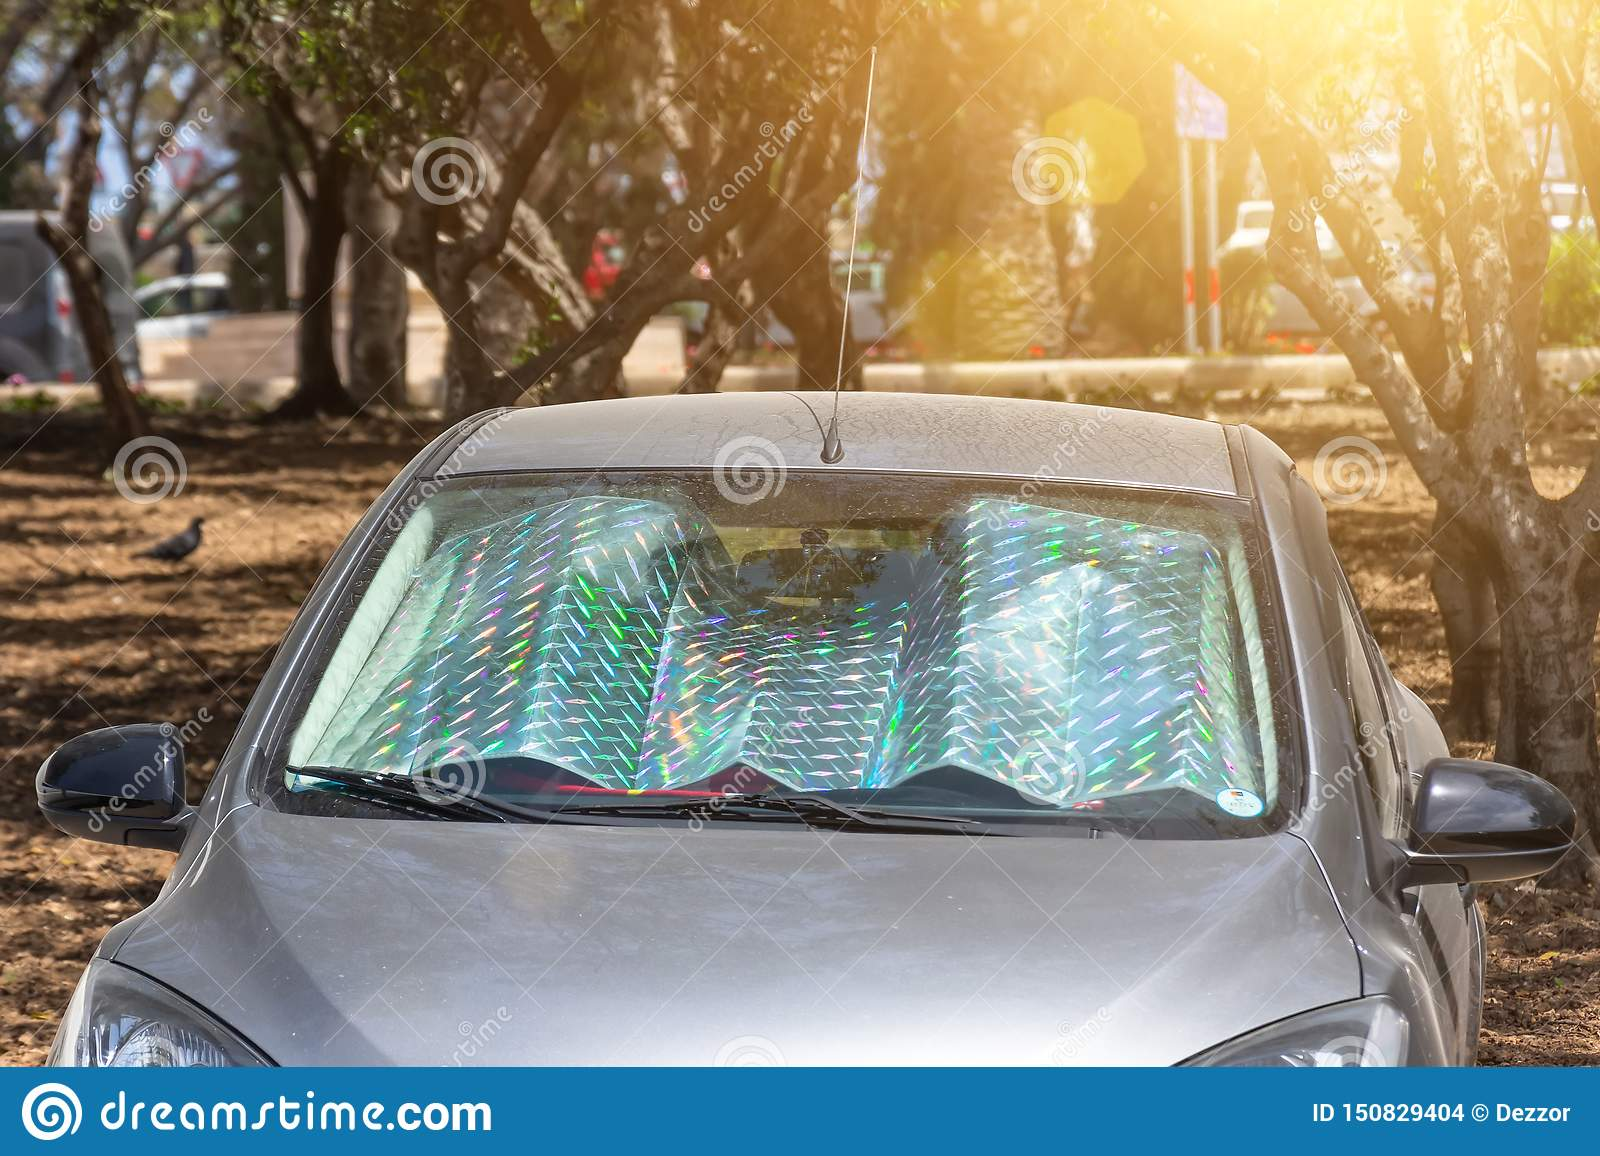 Protective reflective surface under the windshield of the passenger car parked on a hot day, heated by the sun`s rays inside the